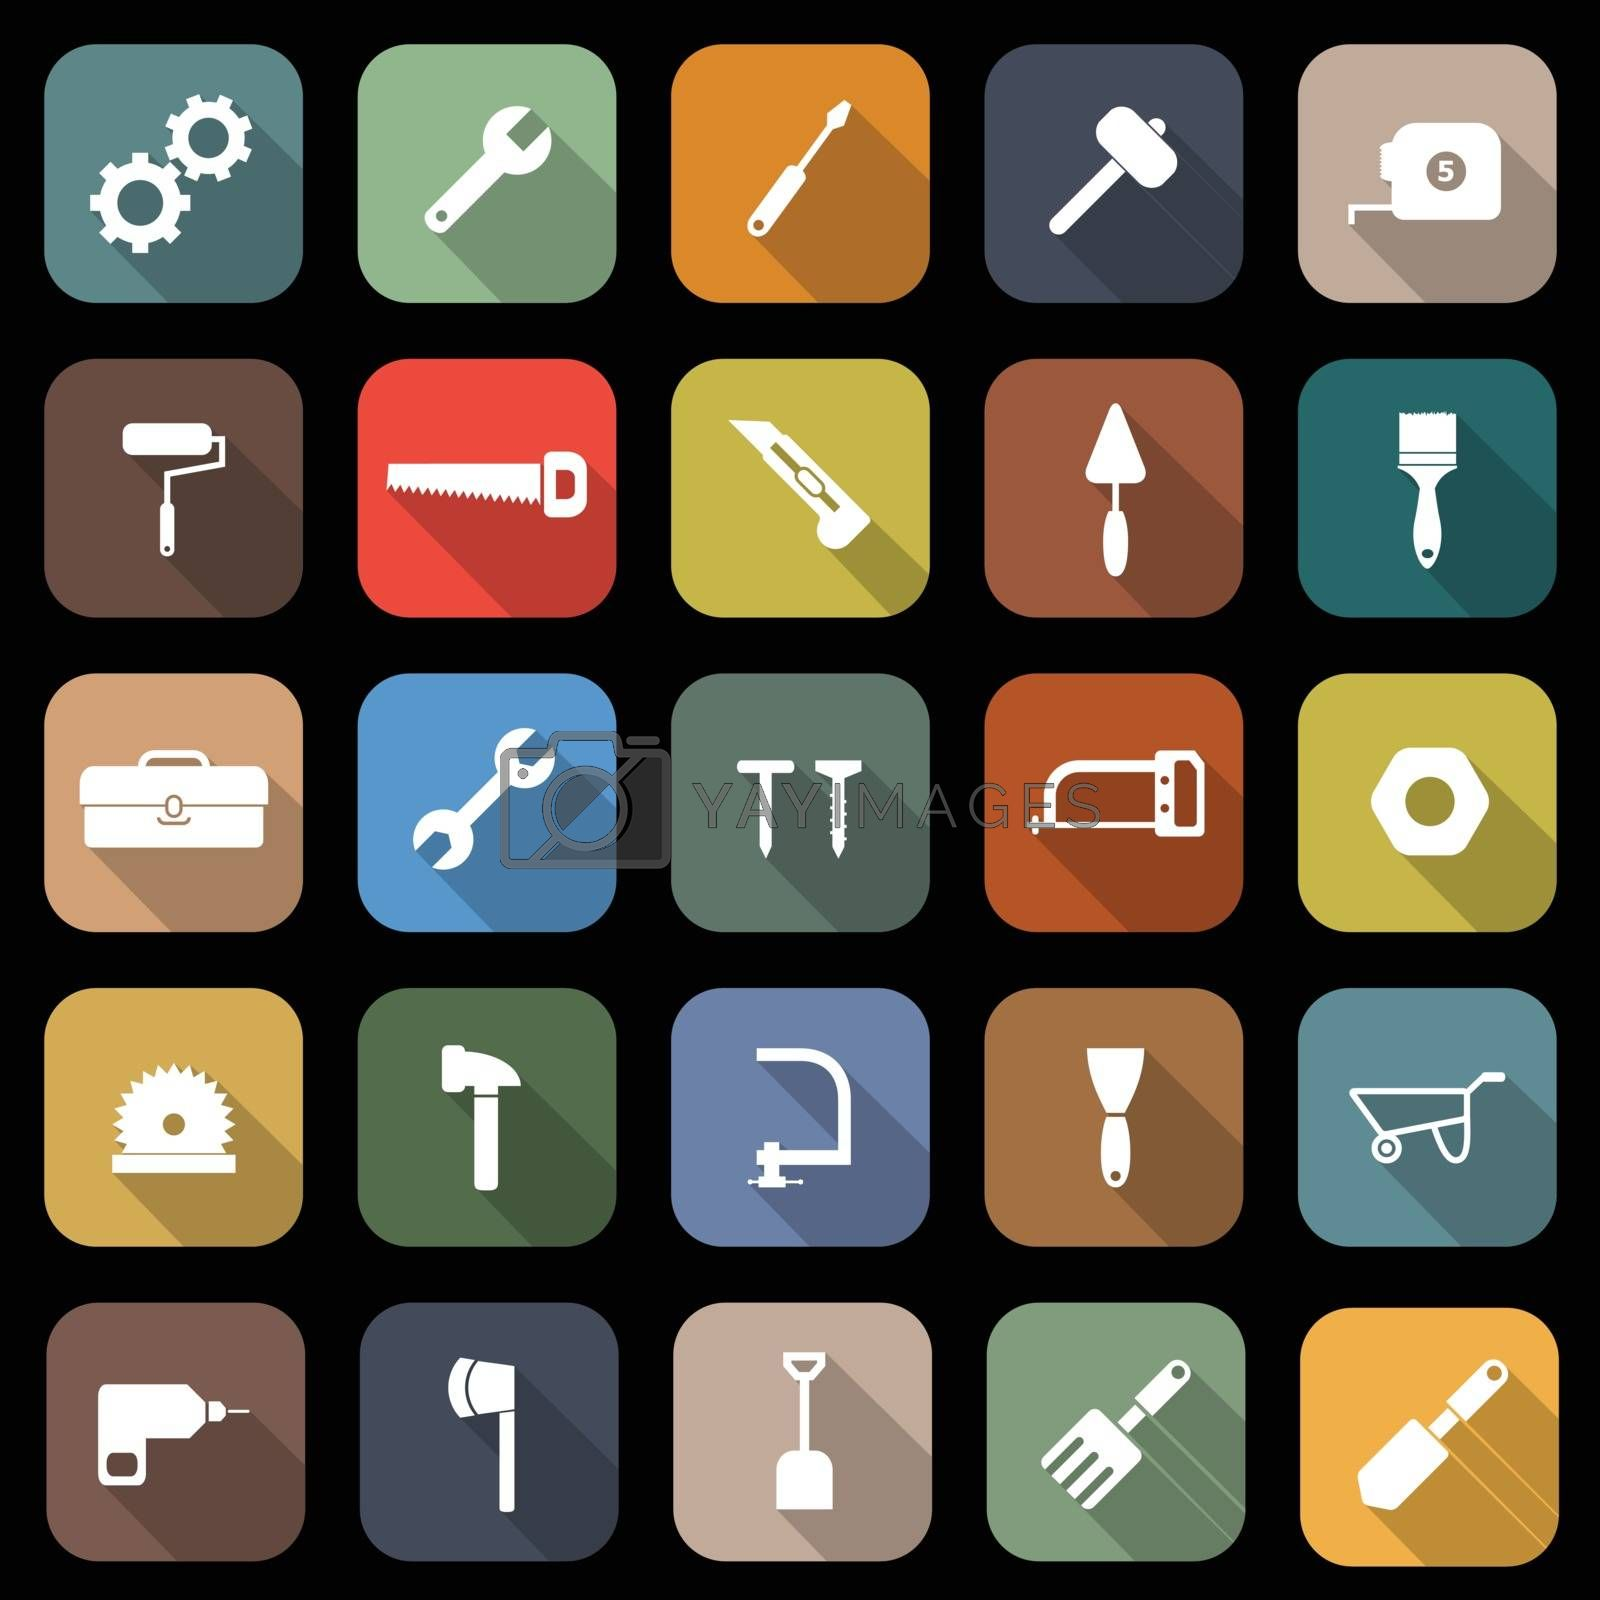 Tool flat icons with long shadow, stock vector